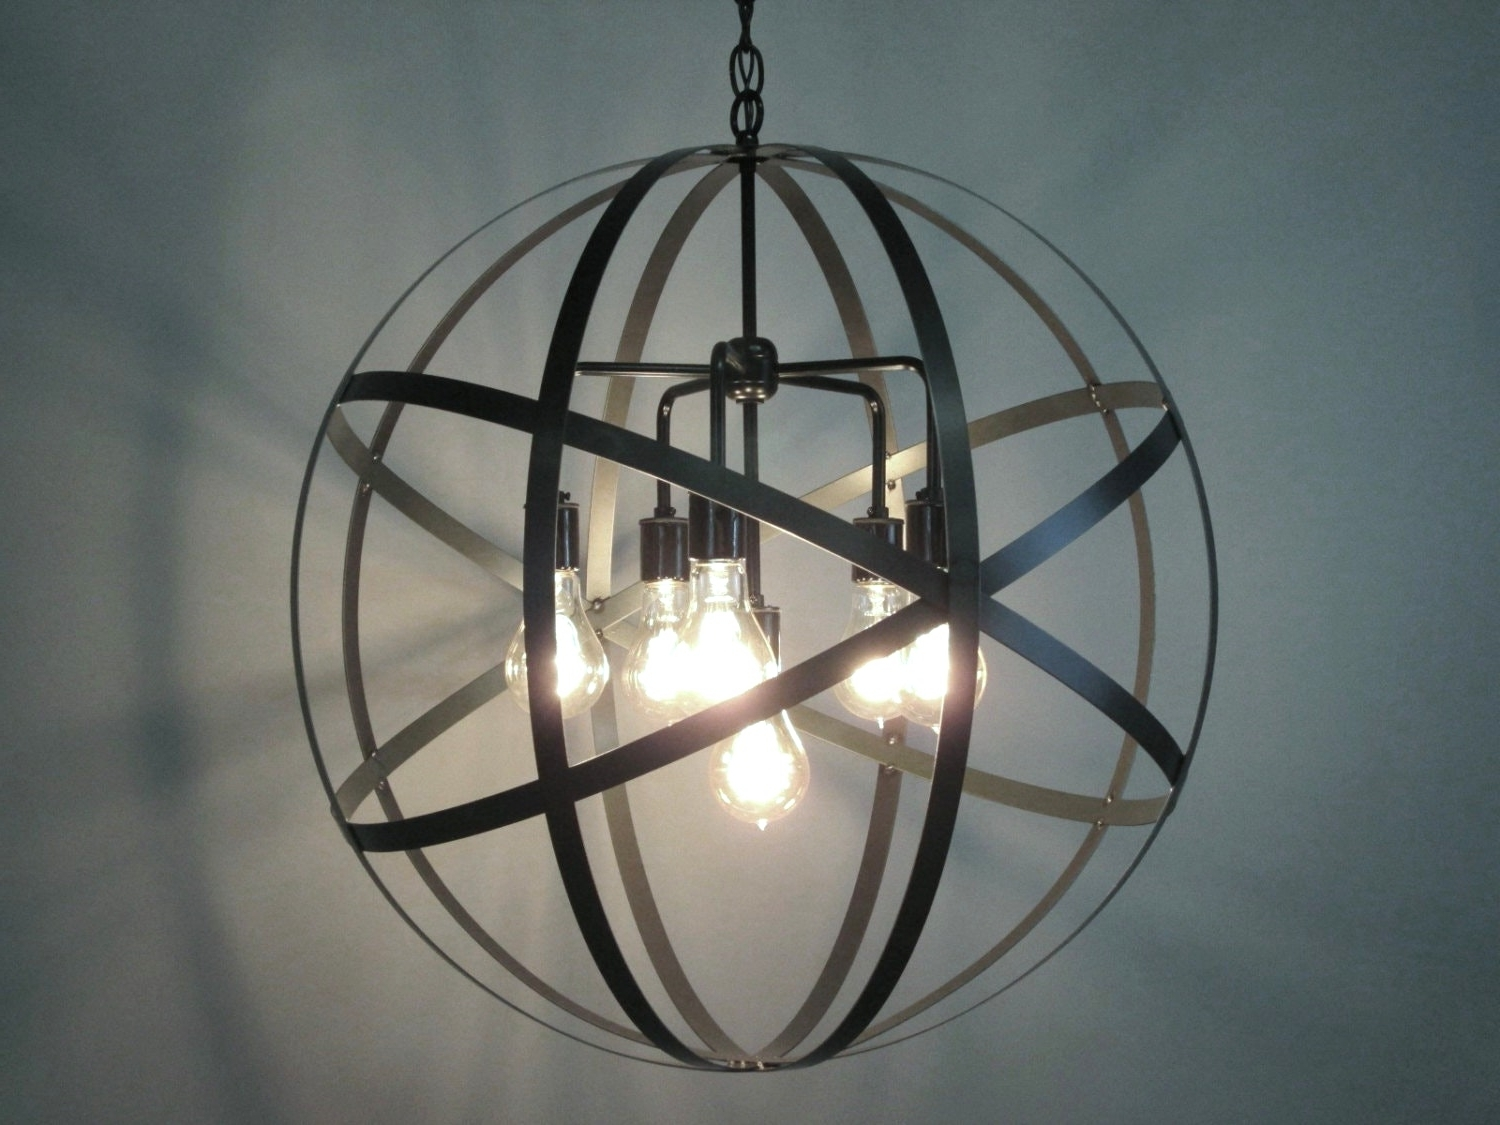 Industrial Orb Chandelier Ceiling Light Sphere 24 With Clear Glass In Fashionable Orb Chandelier (Gallery 11 of 15)